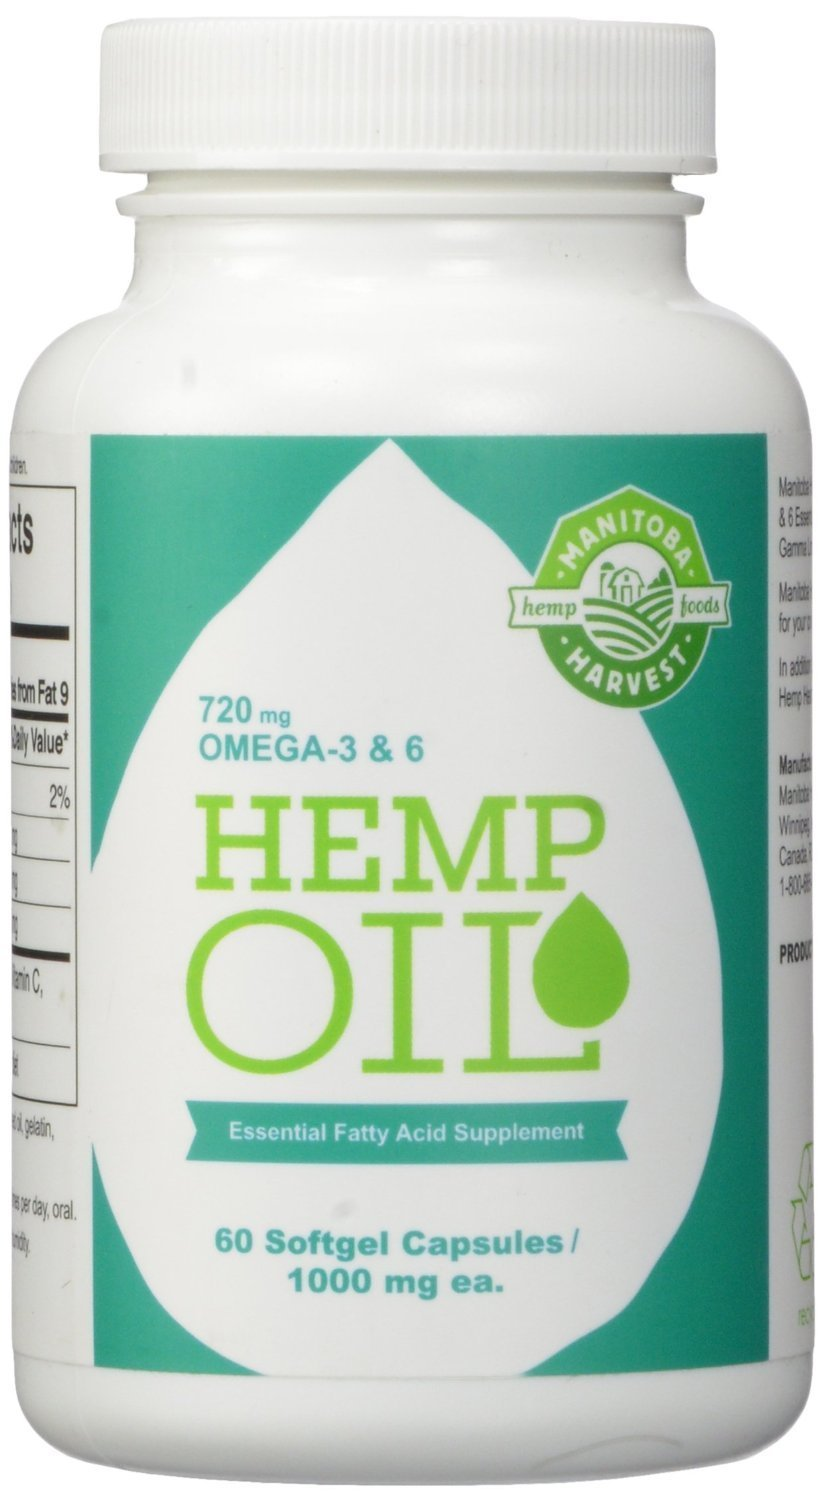 Manitoba Harvest Hemp Seed Oil Softgels, 2,475mg of Plant Based Omegas 3,6 & 9 per serving including GLA, Fish Oil Alternative, 60ct (pack of 12)